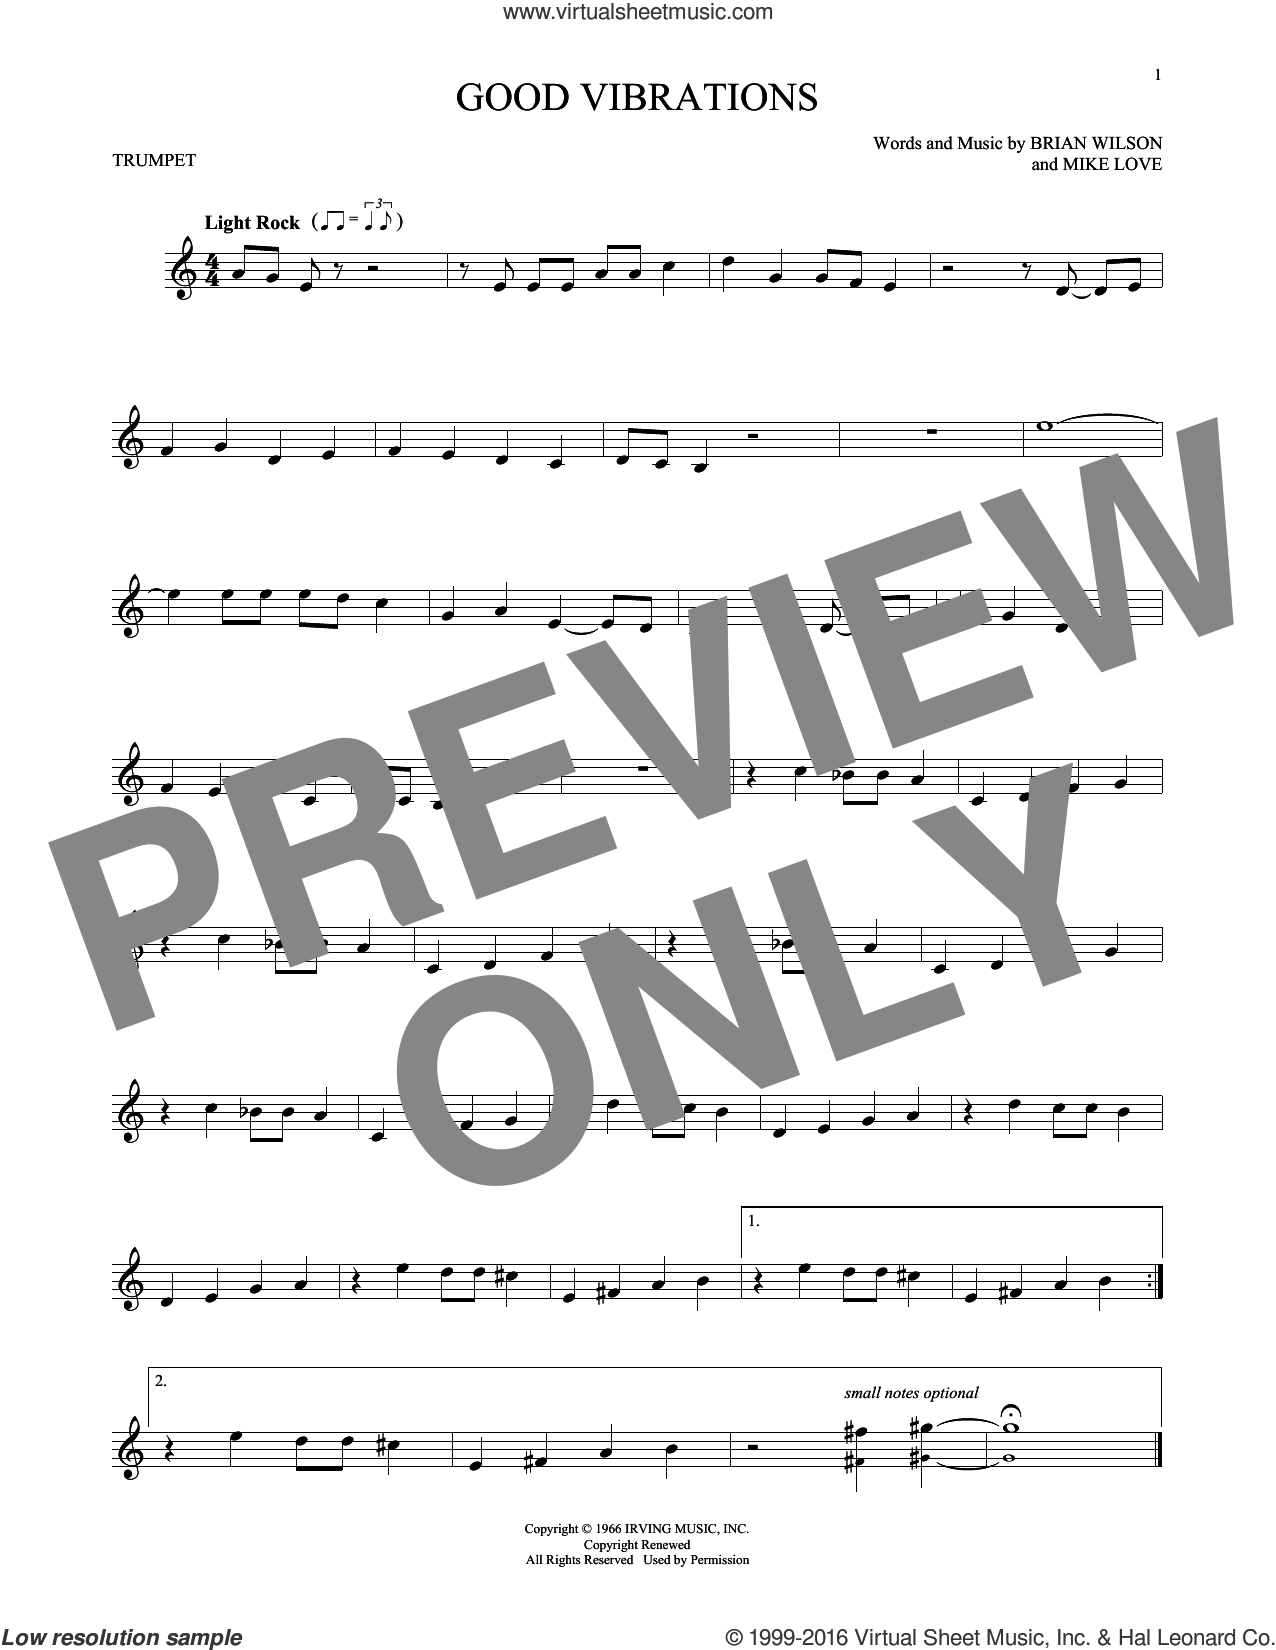 Good Vibrations sheet music for trumpet solo by The Beach Boys, Brian Wilson and Mike Love, intermediate skill level